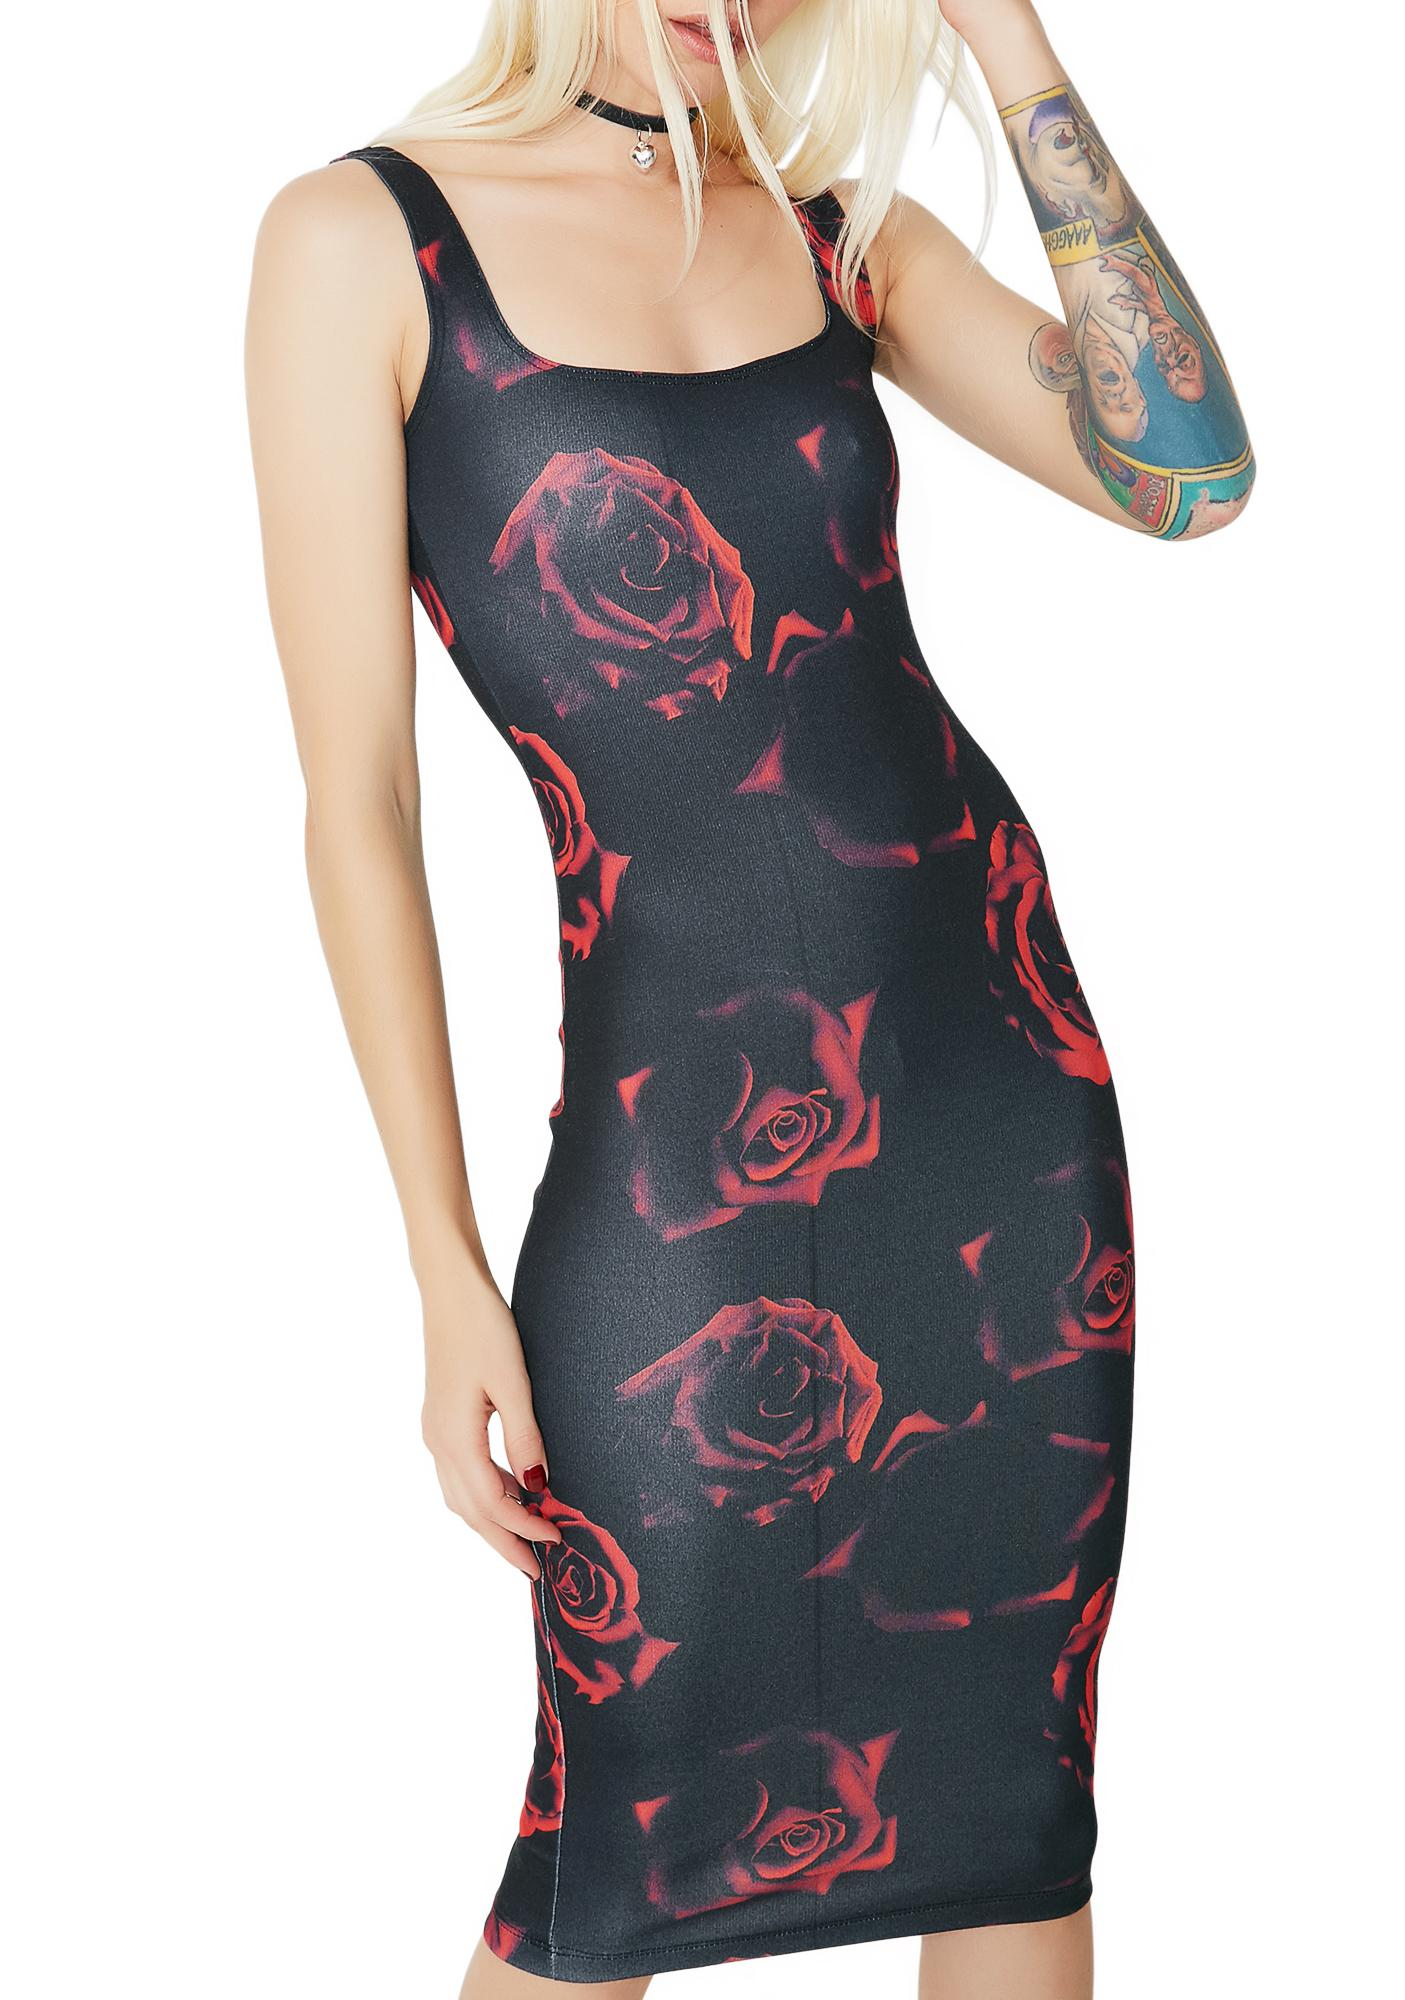 Kiki Riki Pick Me Bodycon Dress